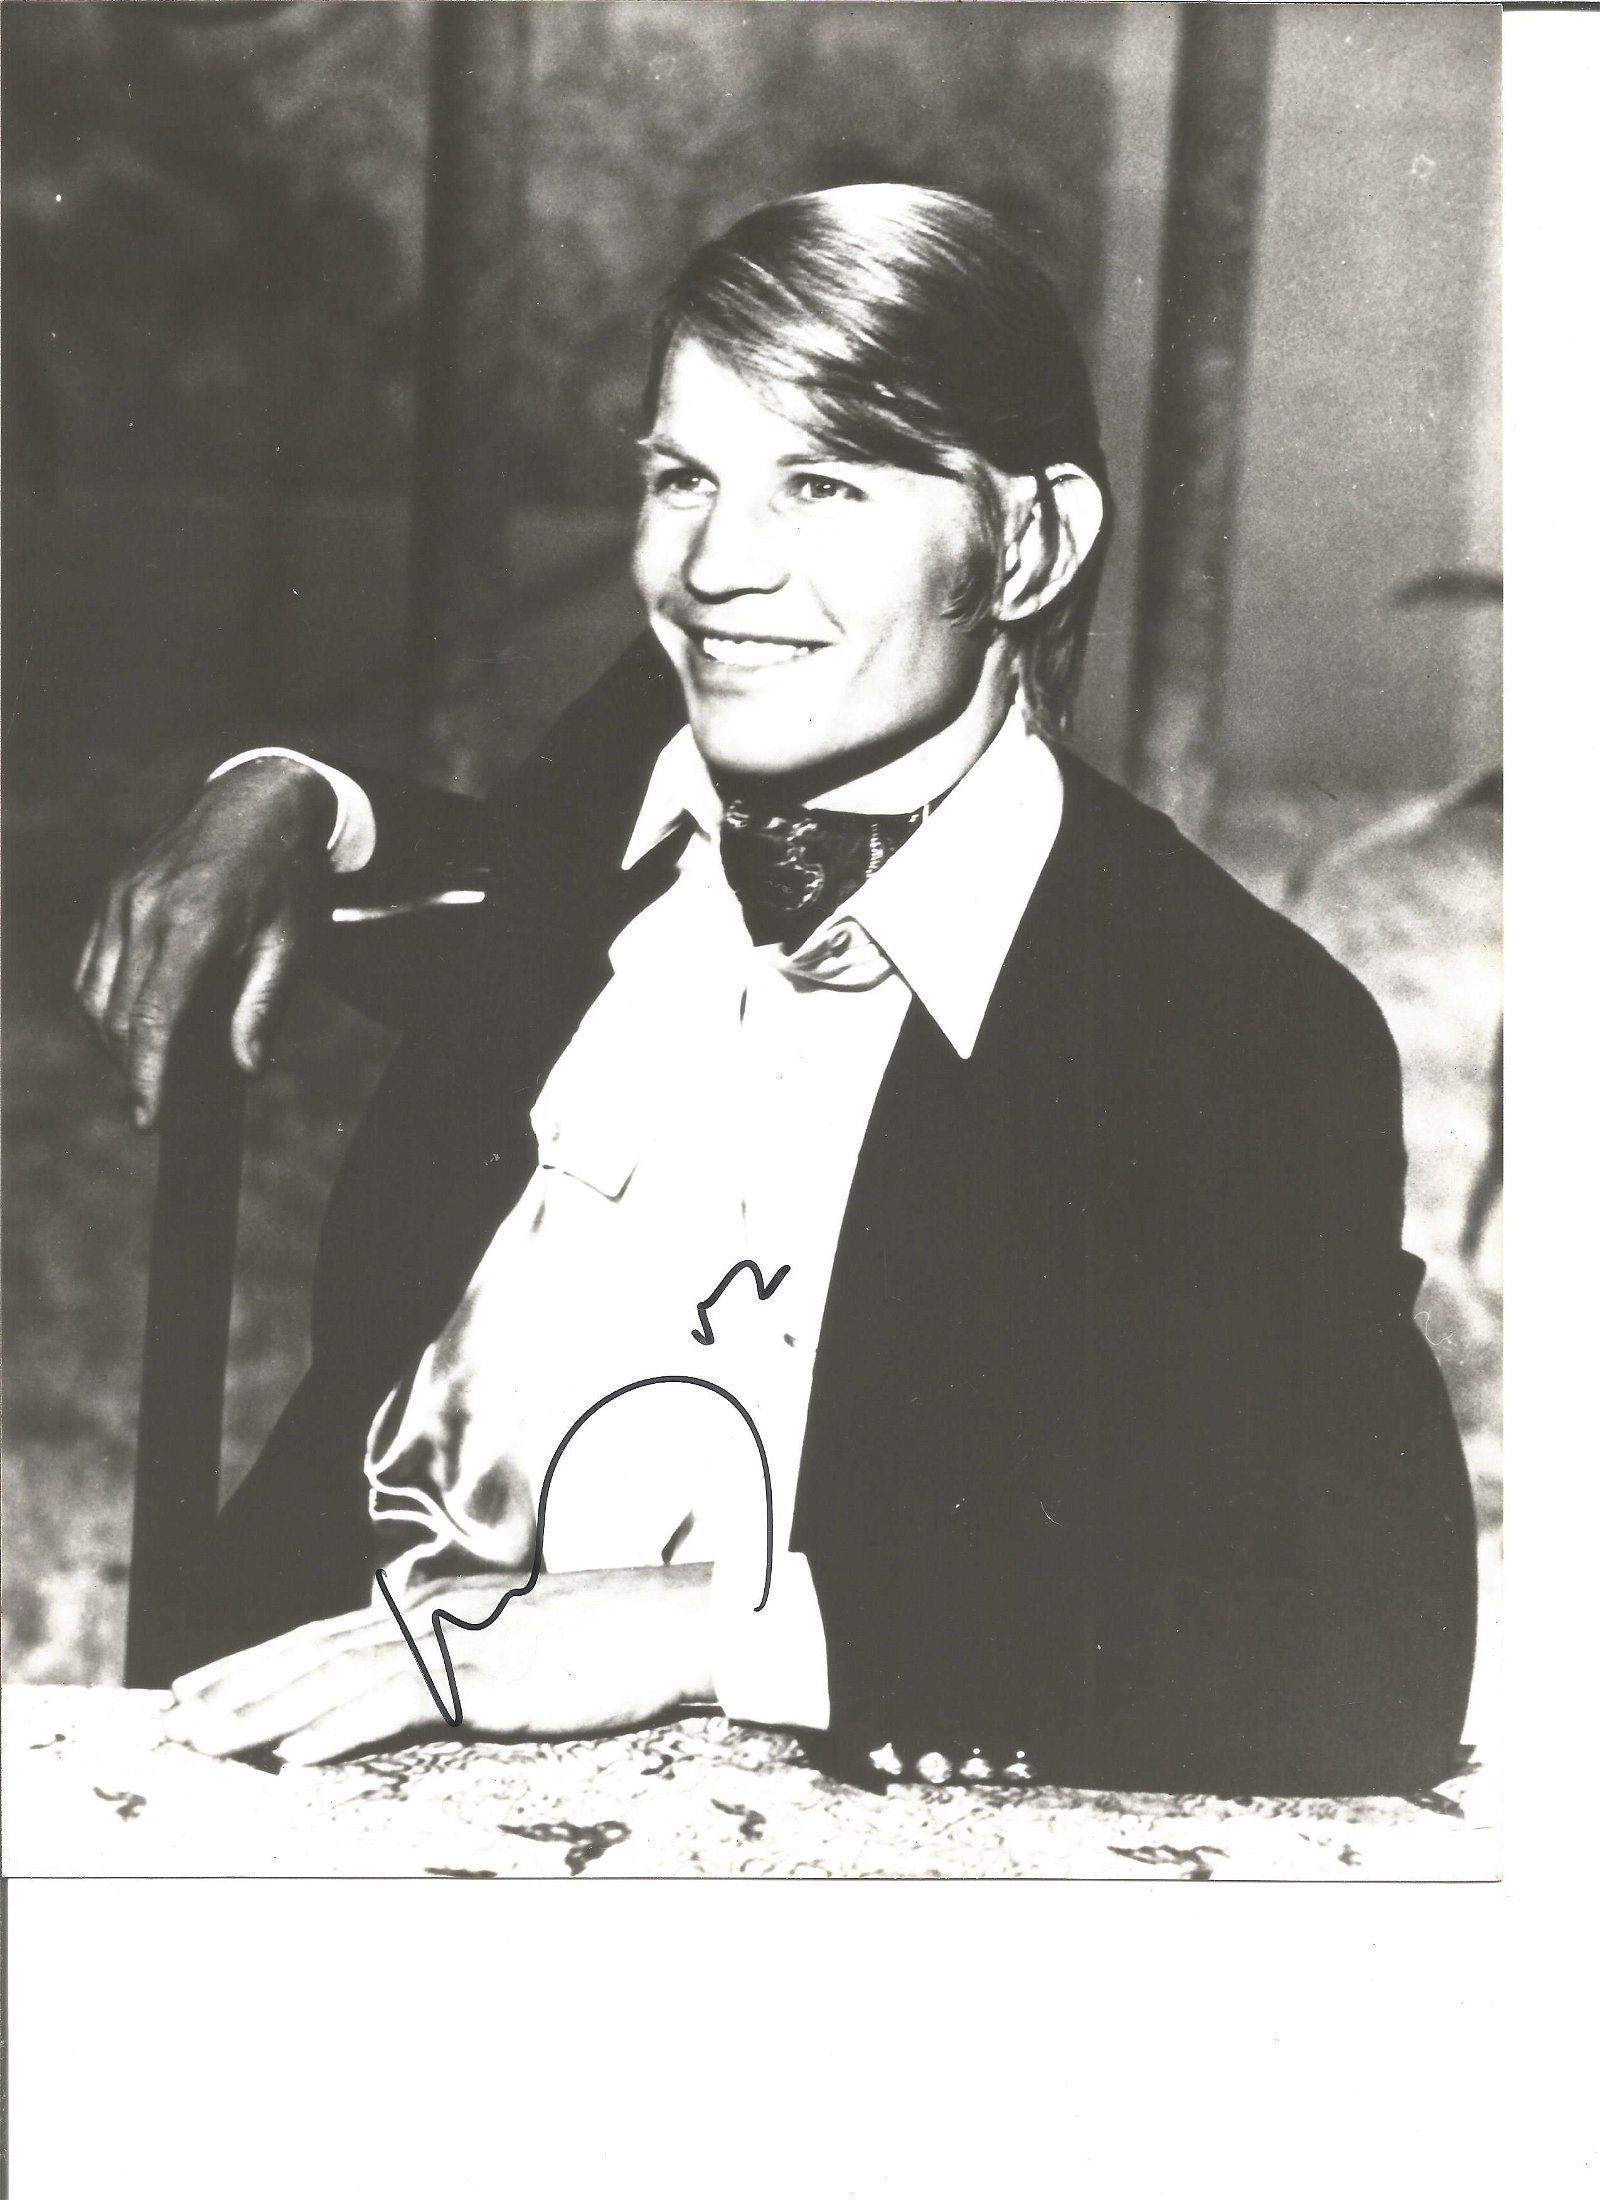 Michael York Actor Signed 8x10 Photo. Good Condition.